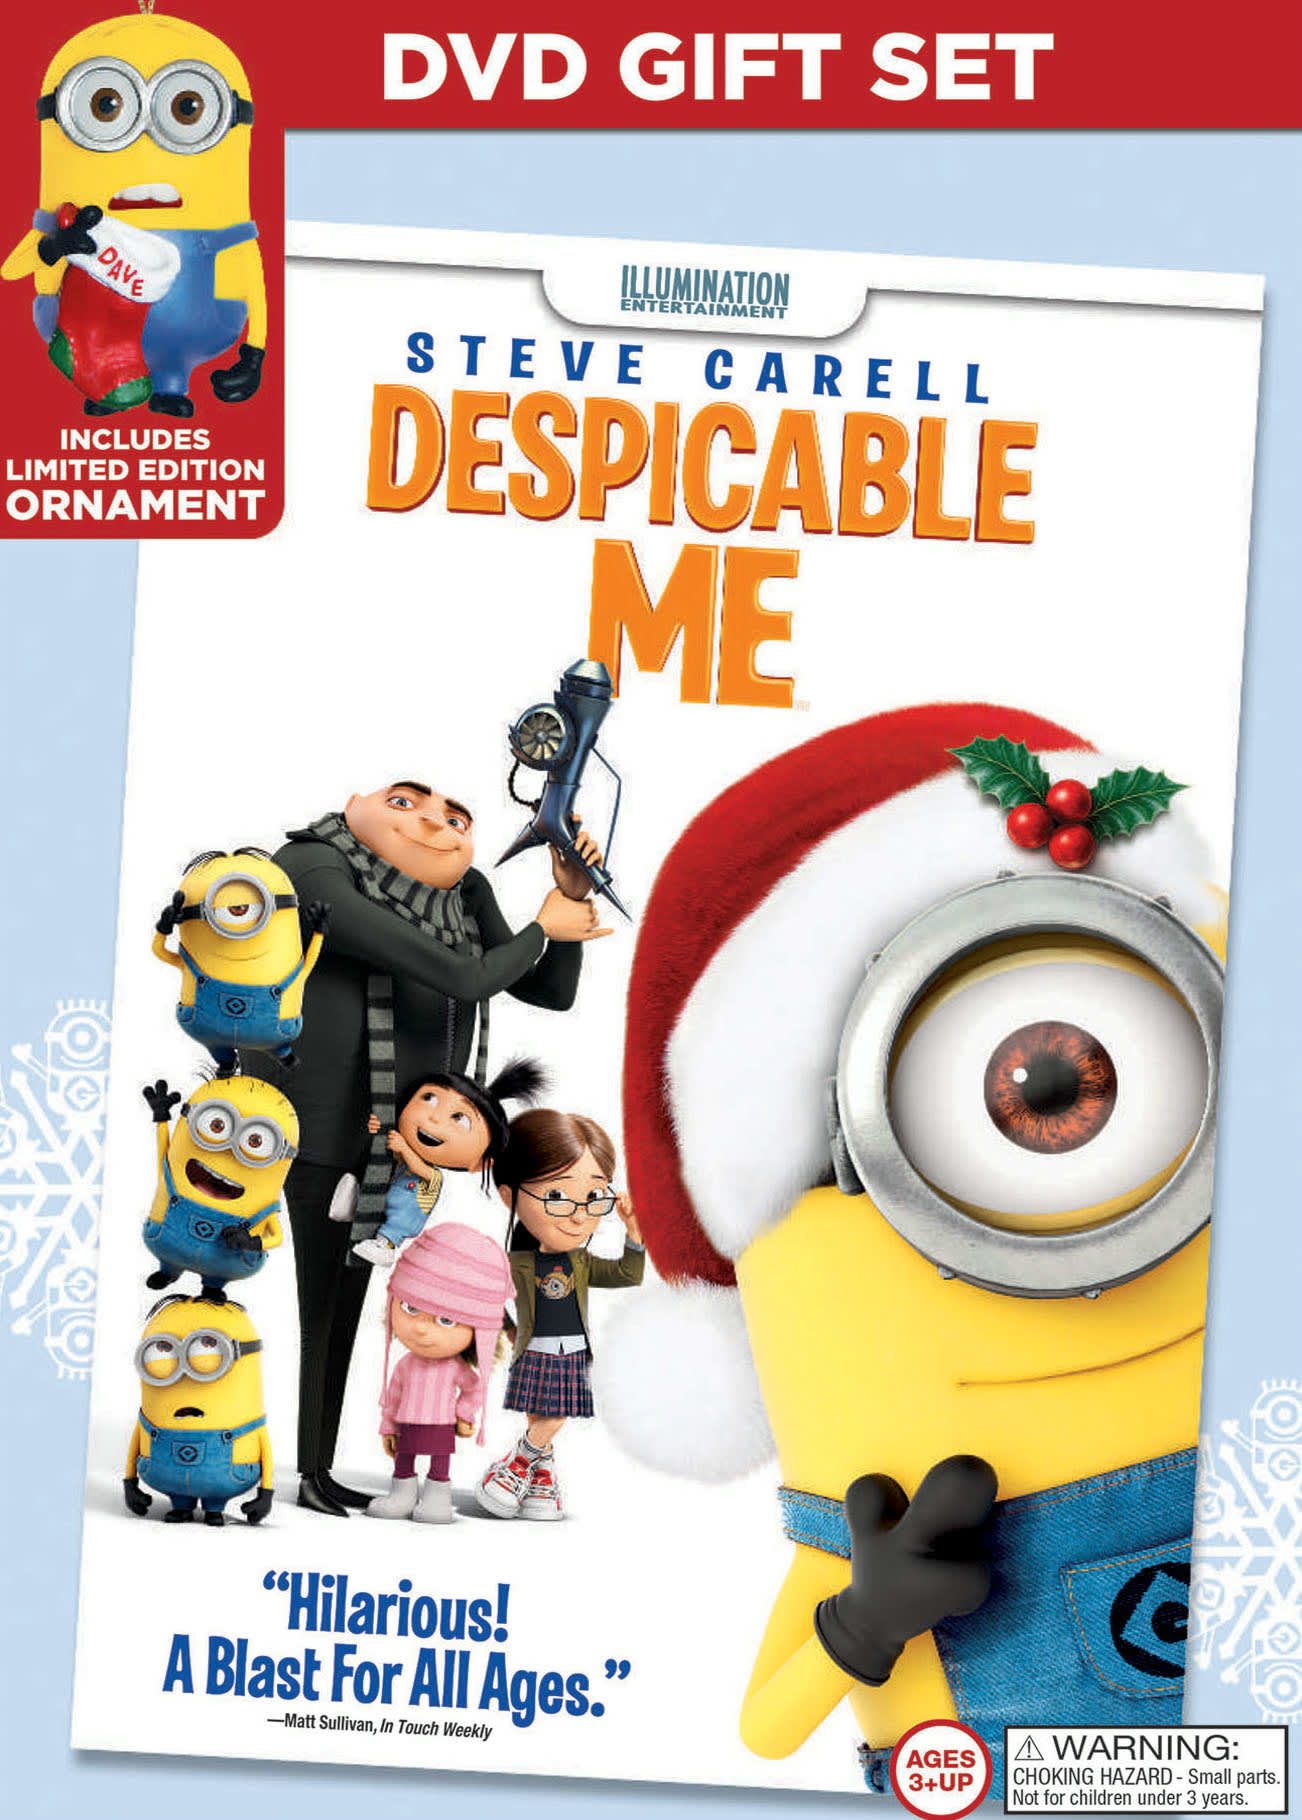 Despicable Me (Limited Edition Ornament Gift Set) [DVD]